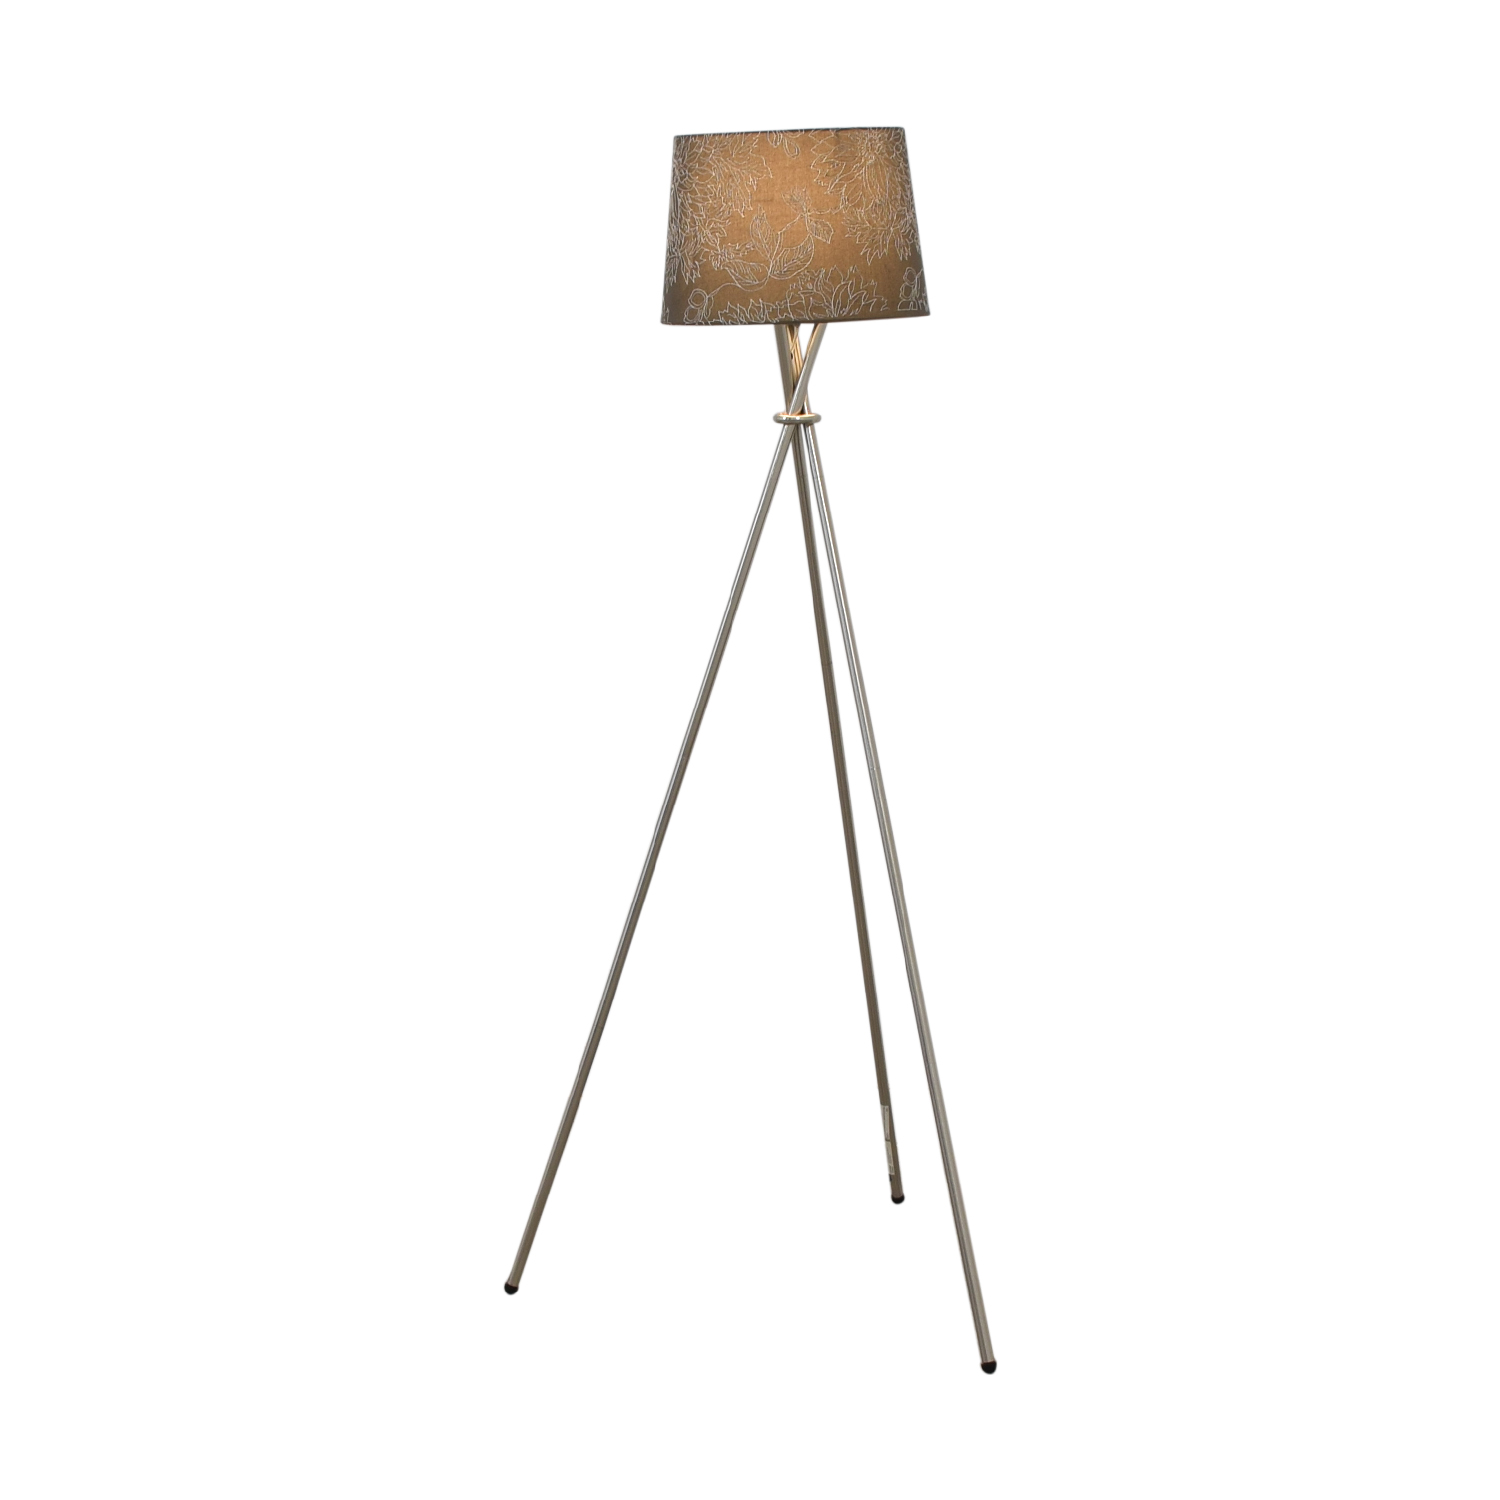 Tripod Floor Lamp second hand